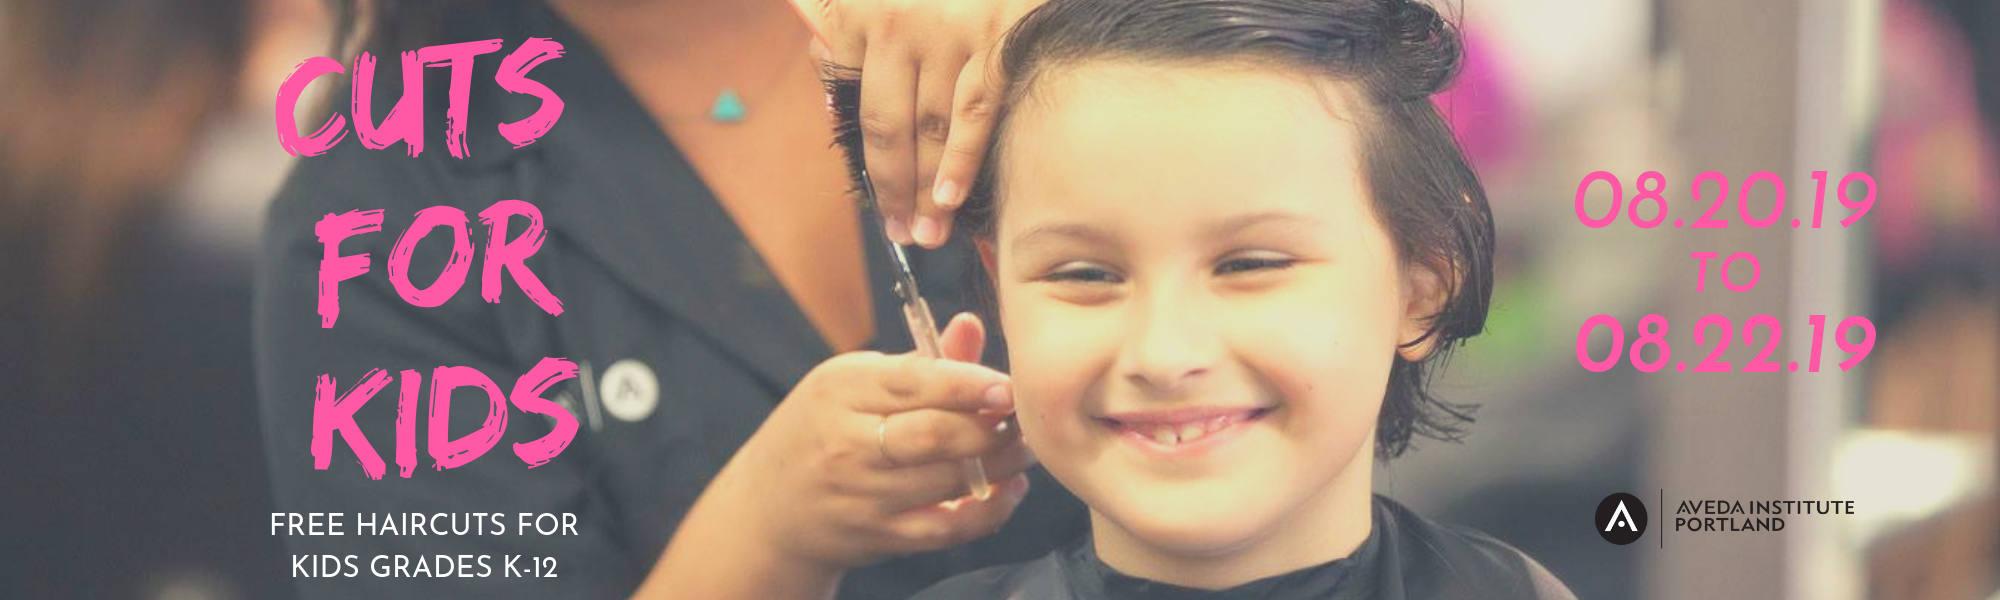 Our annual cuts for kids event offers free haircuts for kids kindergarten through highschool k thru 12 free haircuts for back to school.